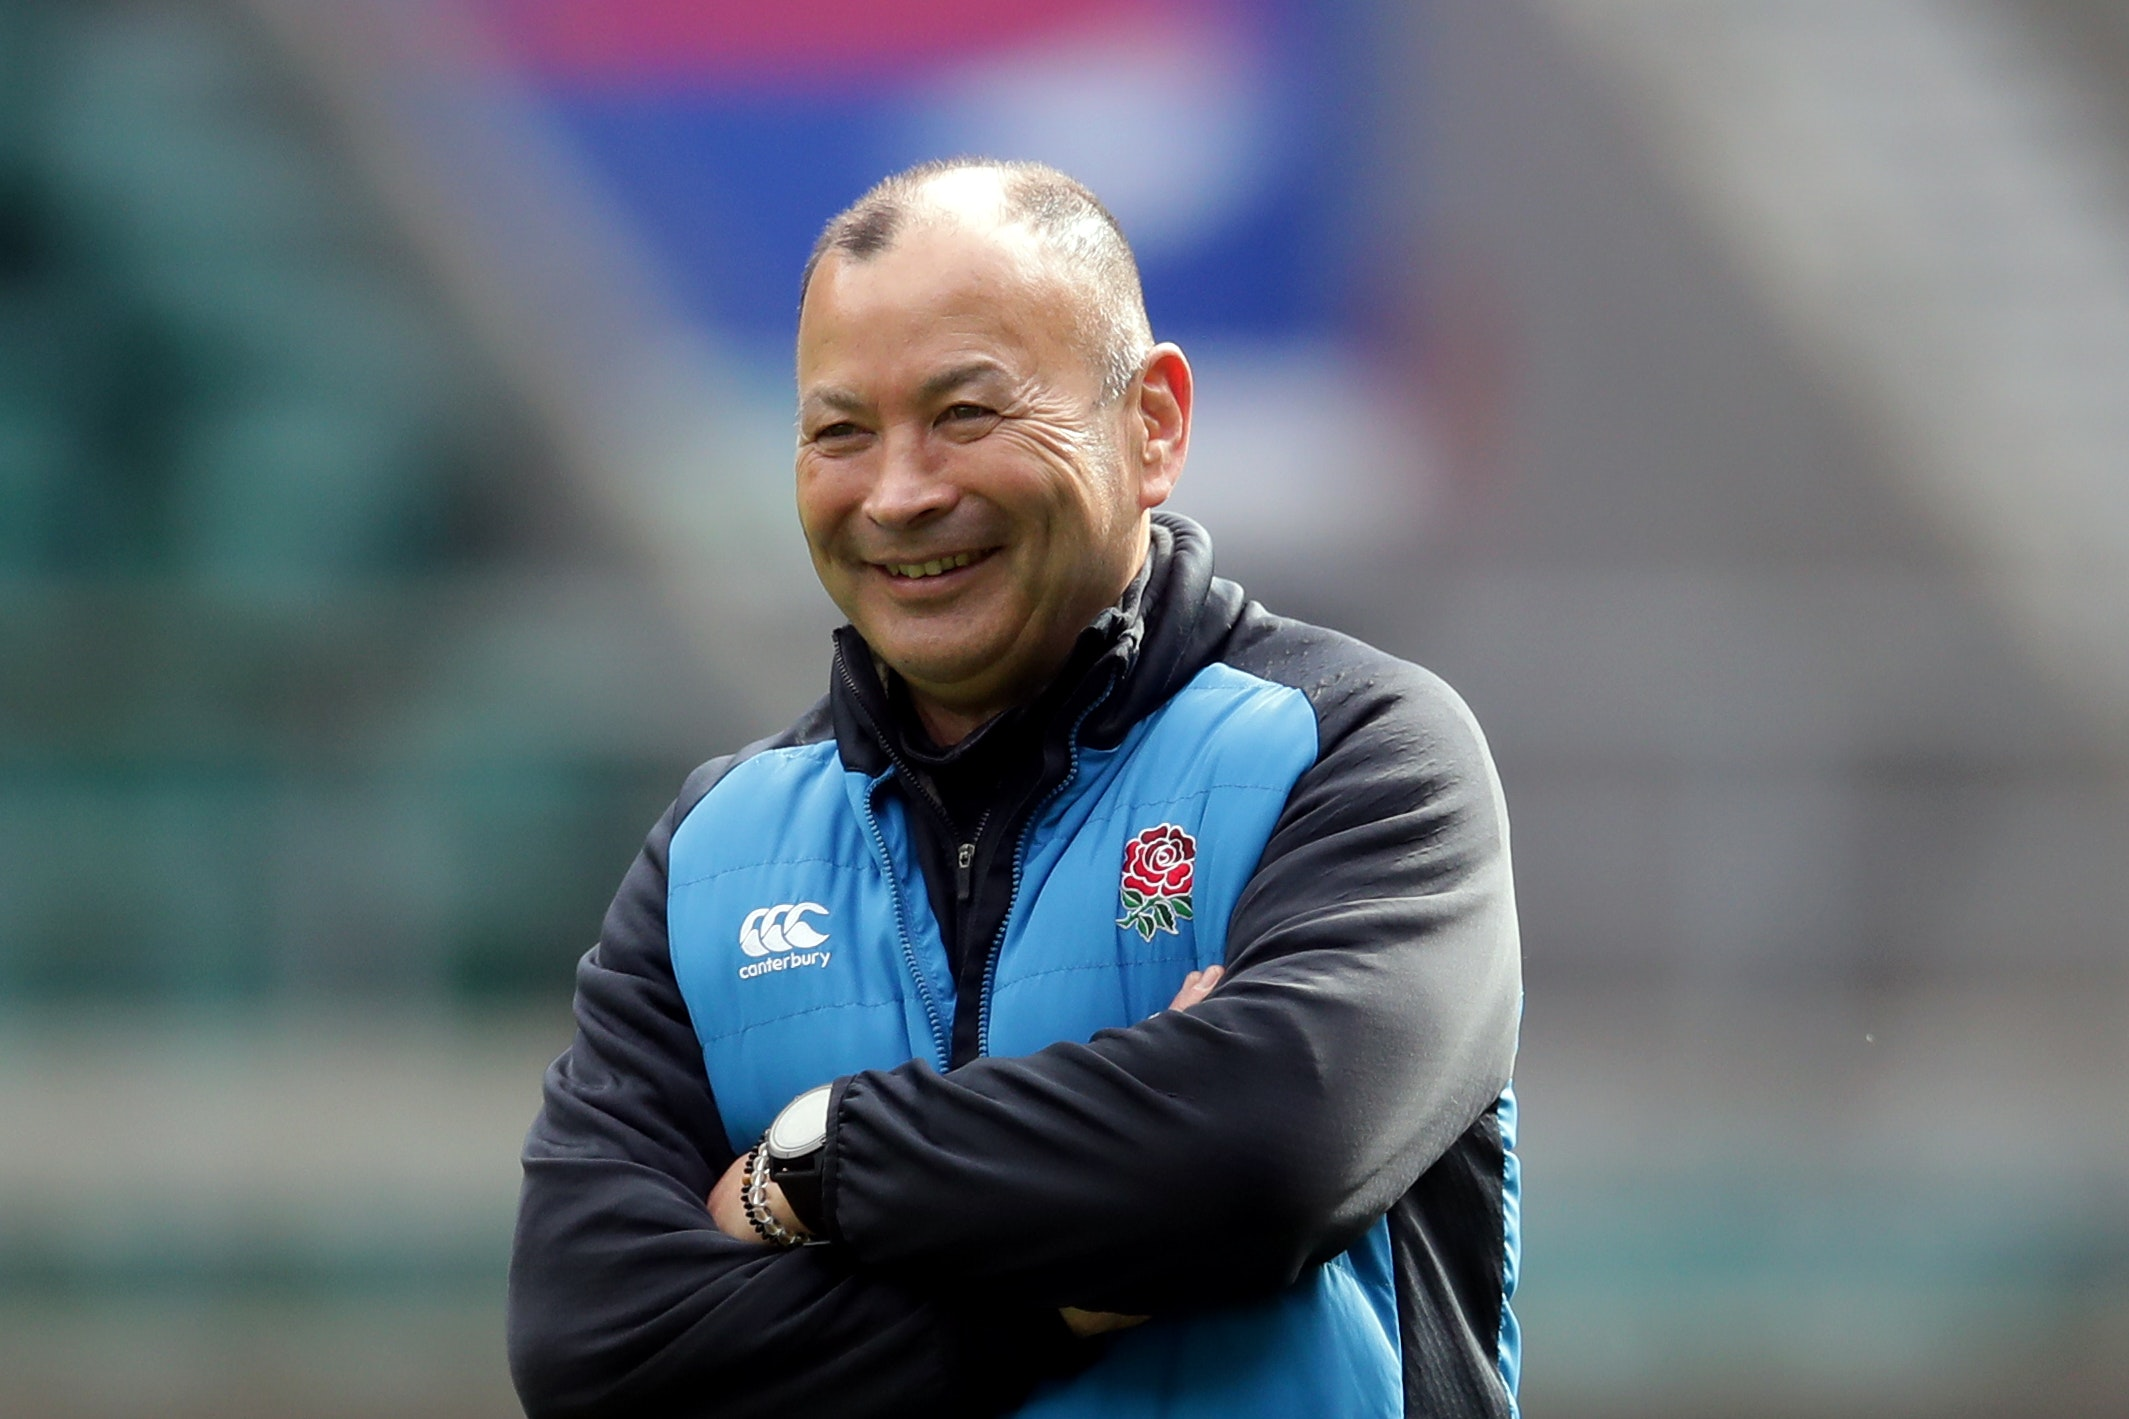 Eddie Jones' England can win the Six Nations title if results go their way this weekend